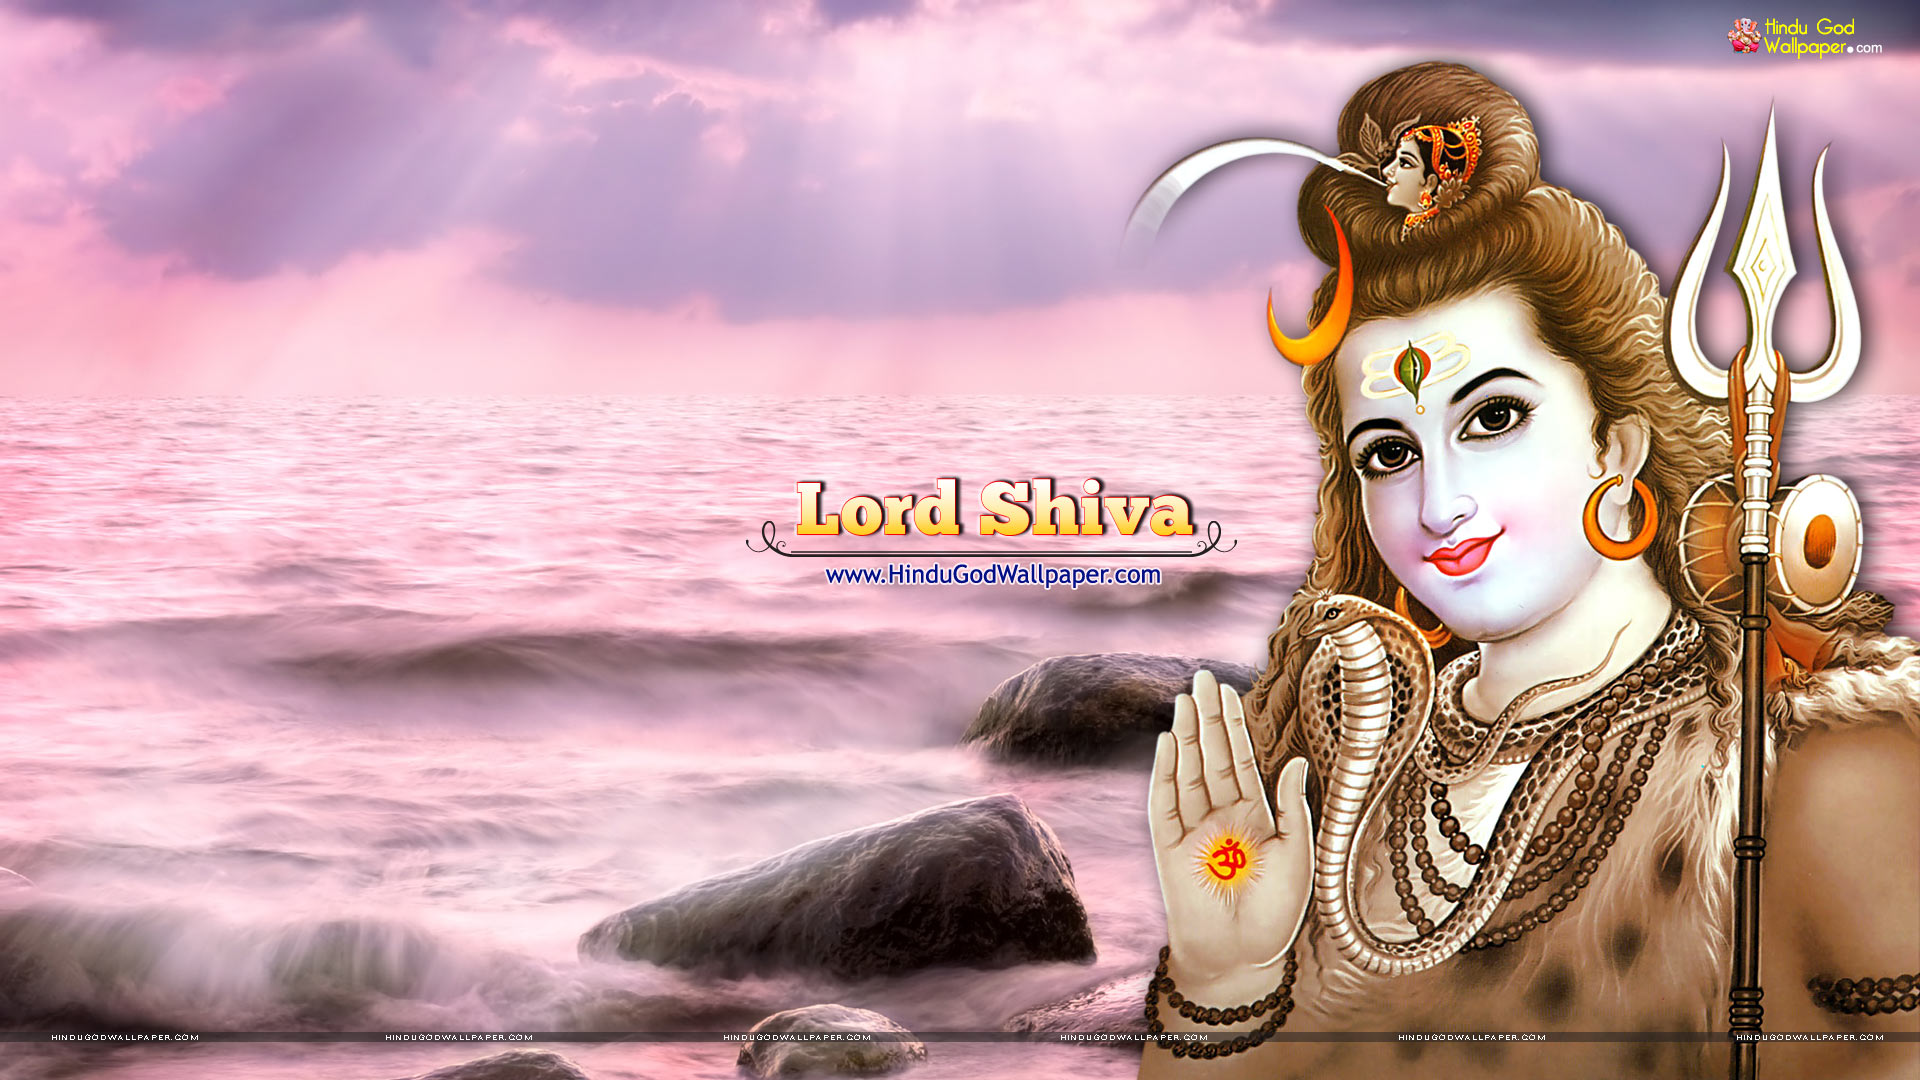 Lord Shiva HD Wallpaper Widescreen 1080p Download 1920x1080